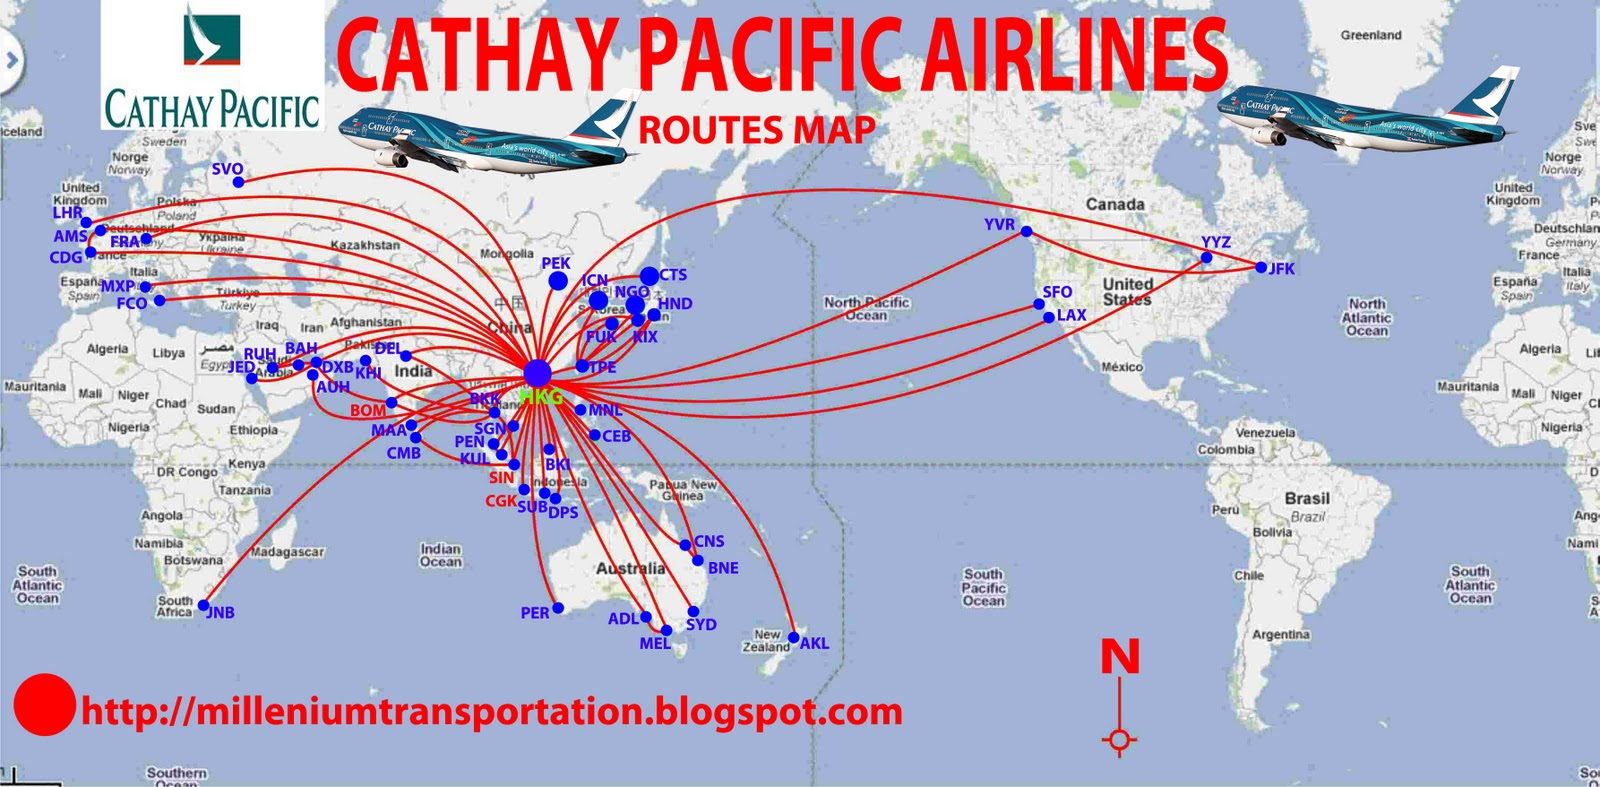 Cathay Pacific Route Map Cathay Pacific Route Map | Examples and Forms